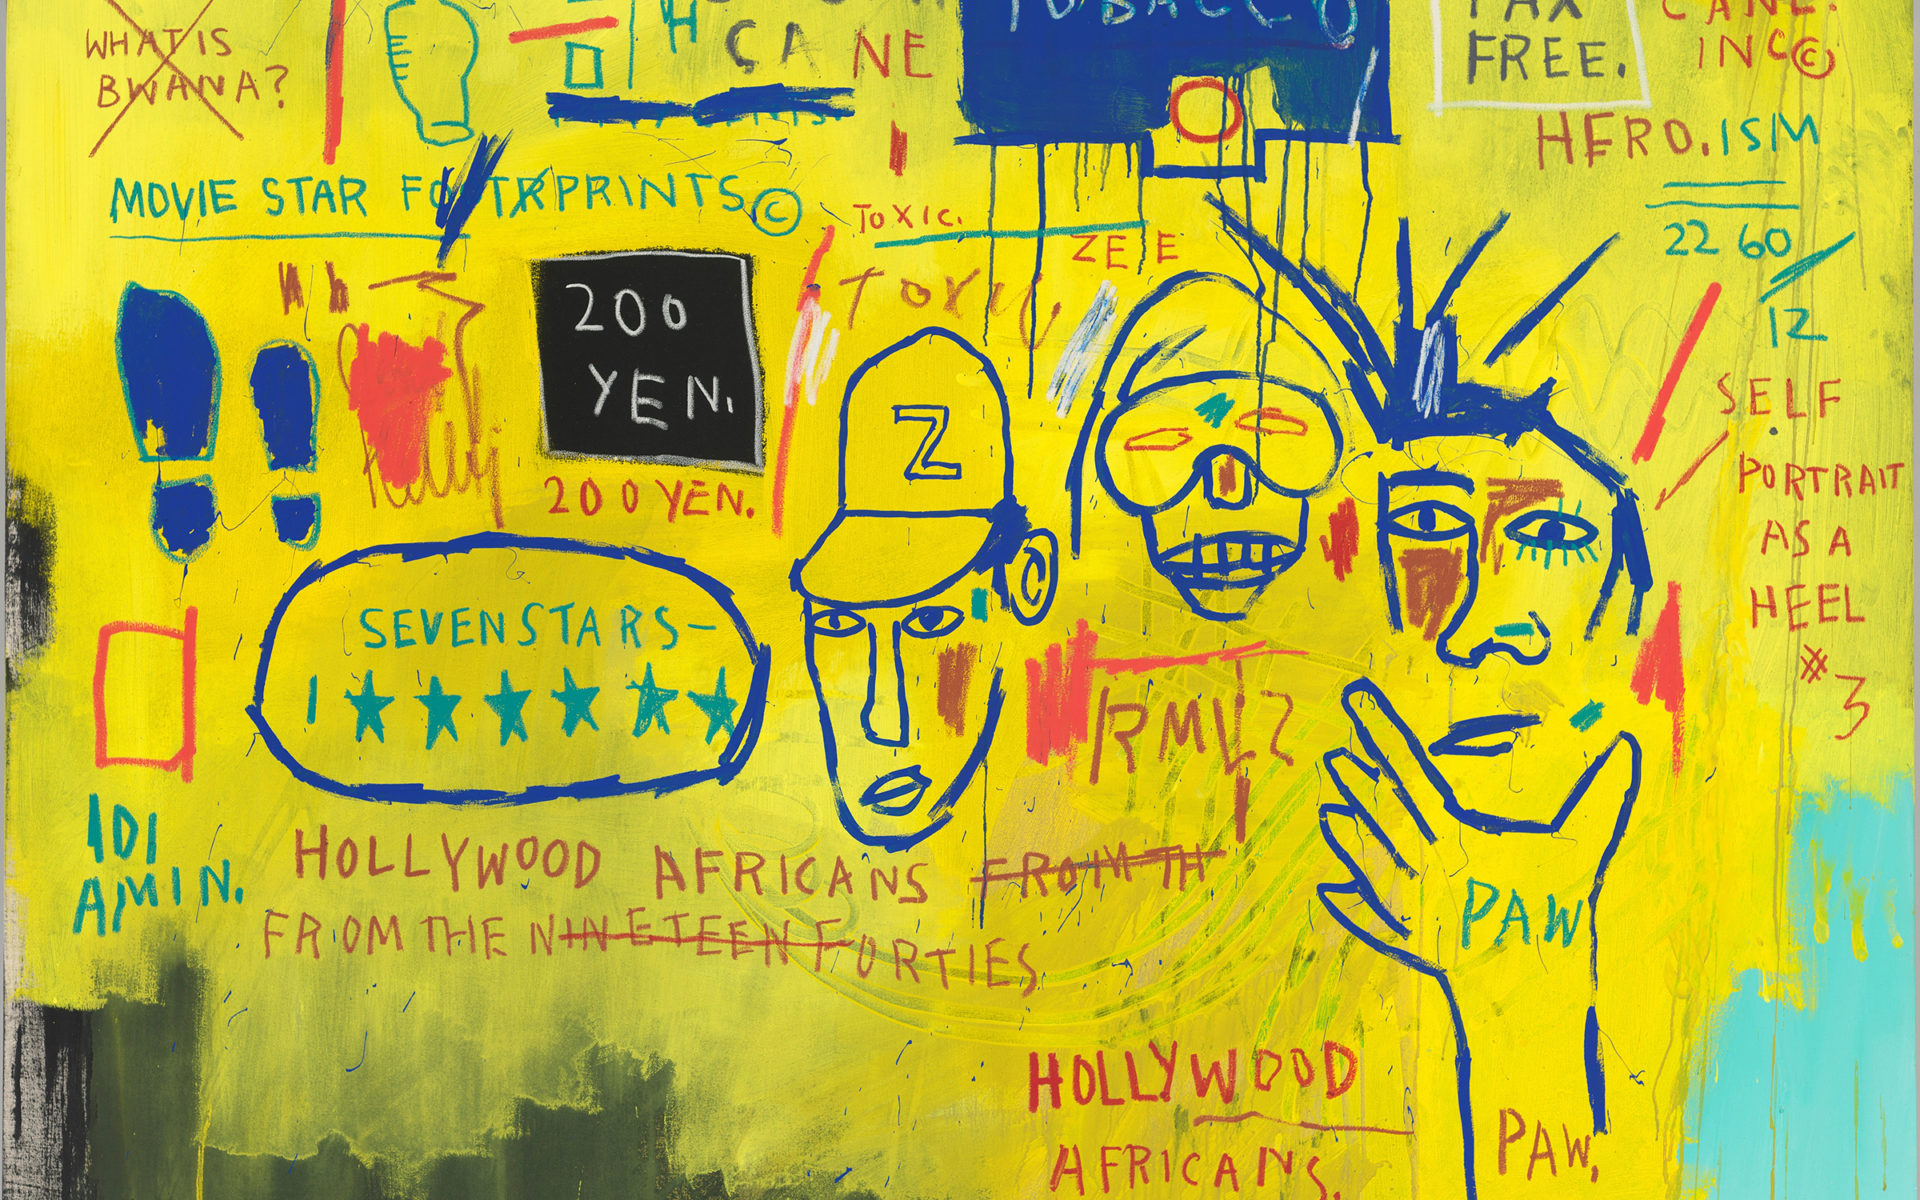 Jean michel basquiat hollywood africans 1983